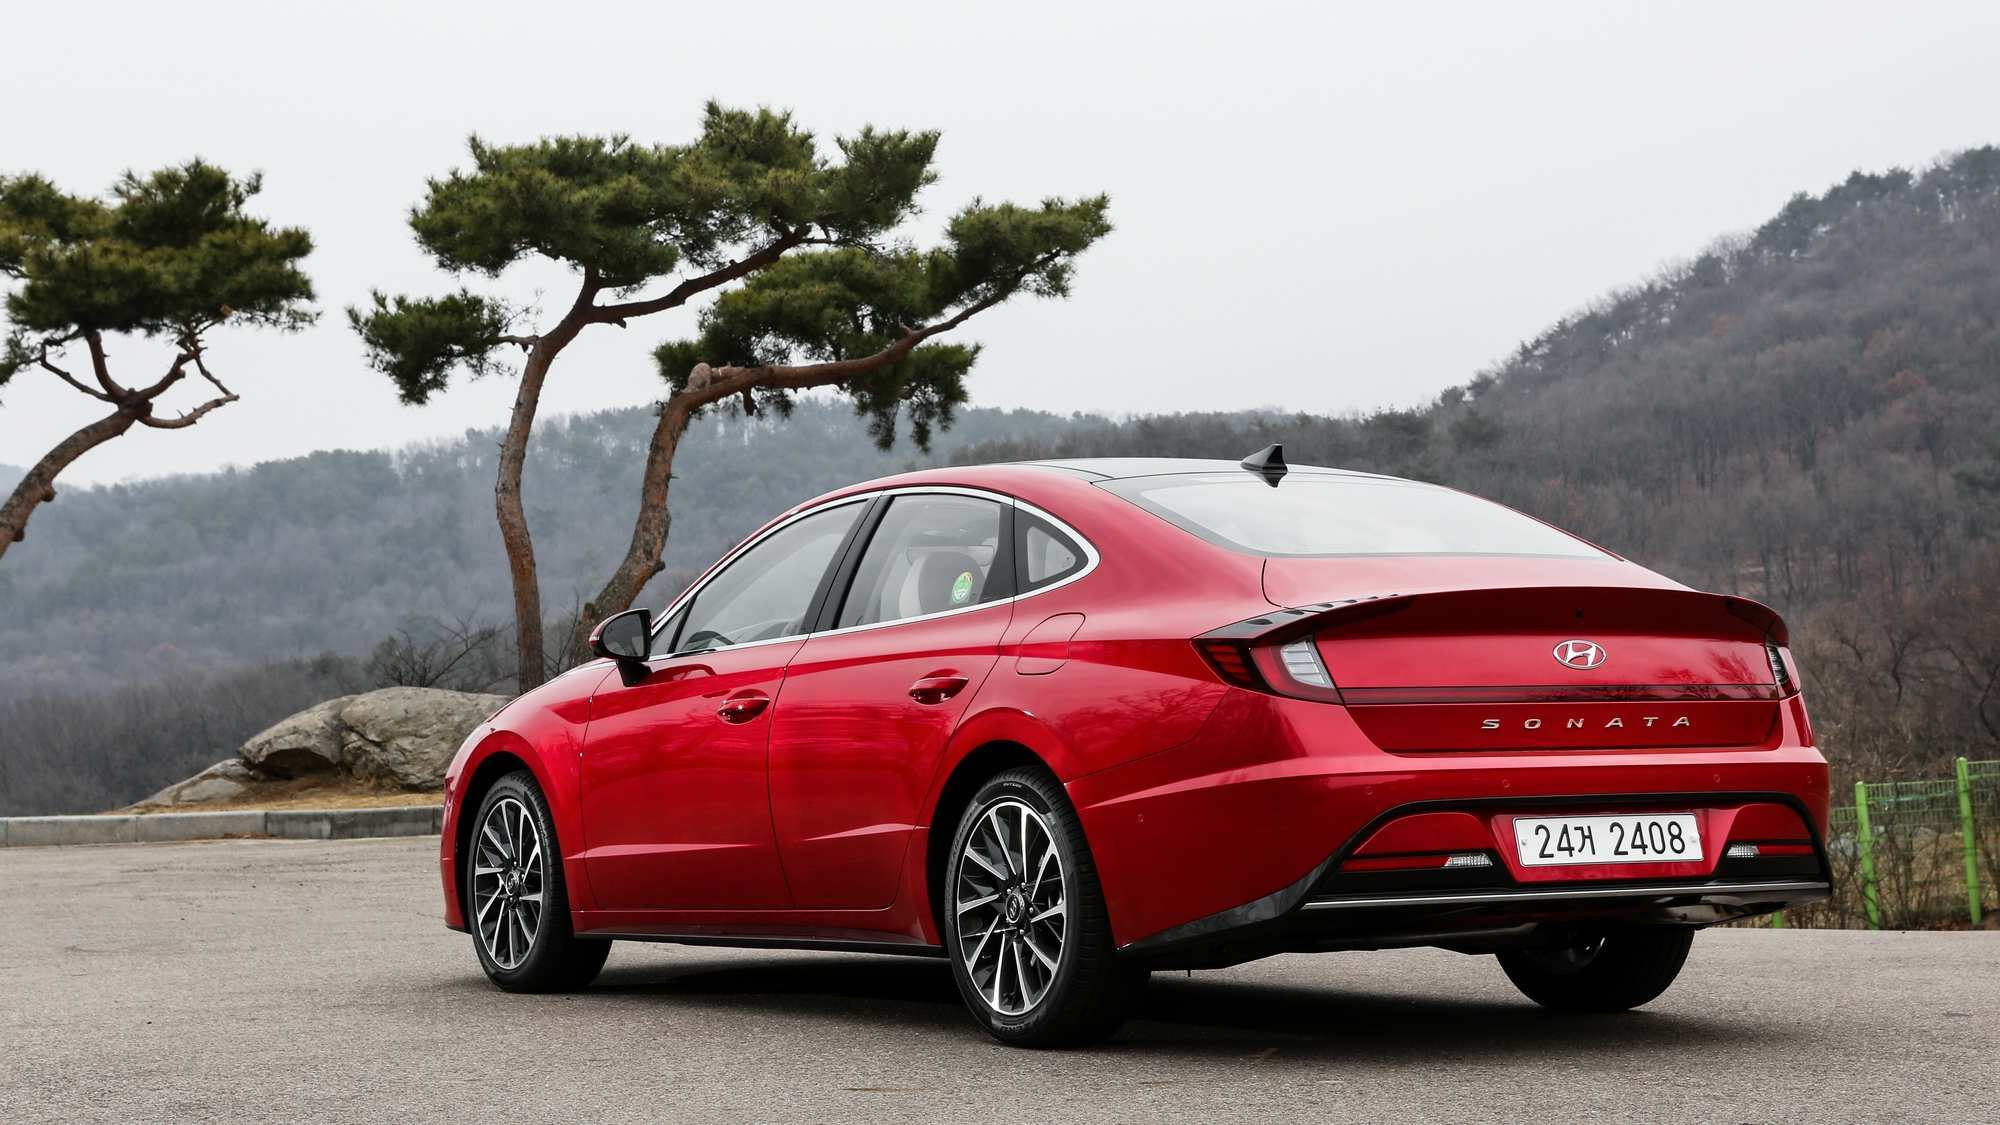 74 All New Hyundai Sonata 2020 Review And Release Date